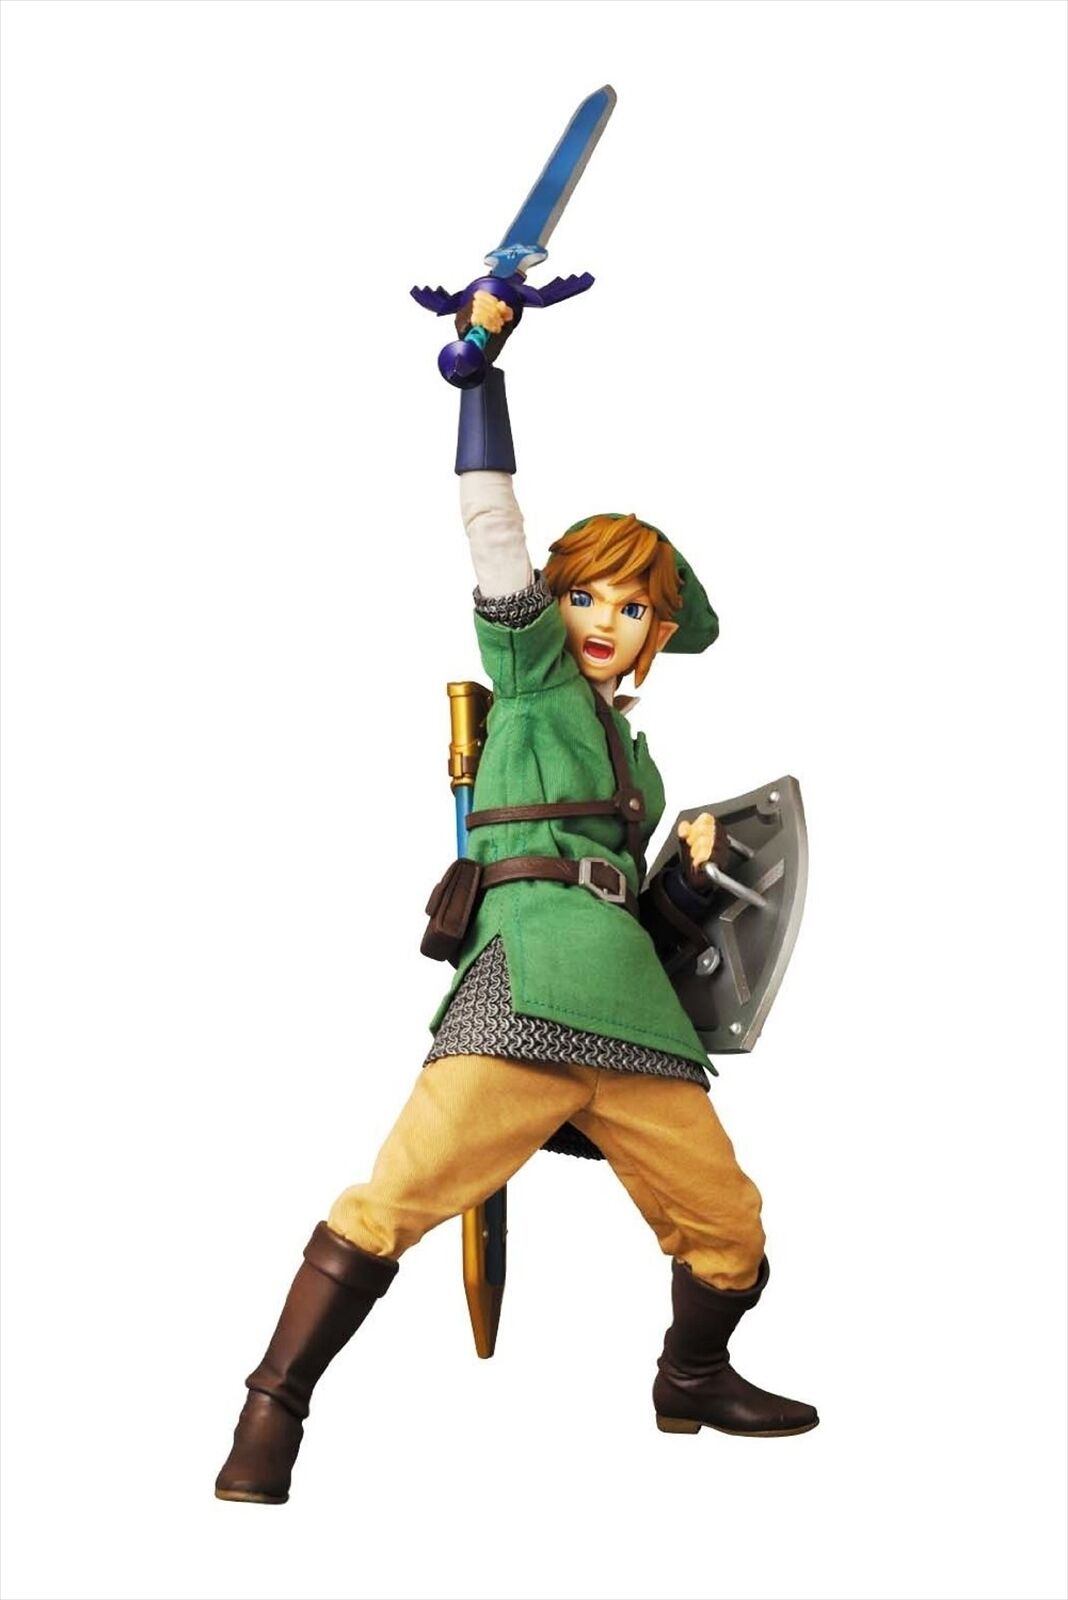 Medicom RAH The Legend of Zelda Skyward Sword Link Real Real Real Action Hero Figure 394228